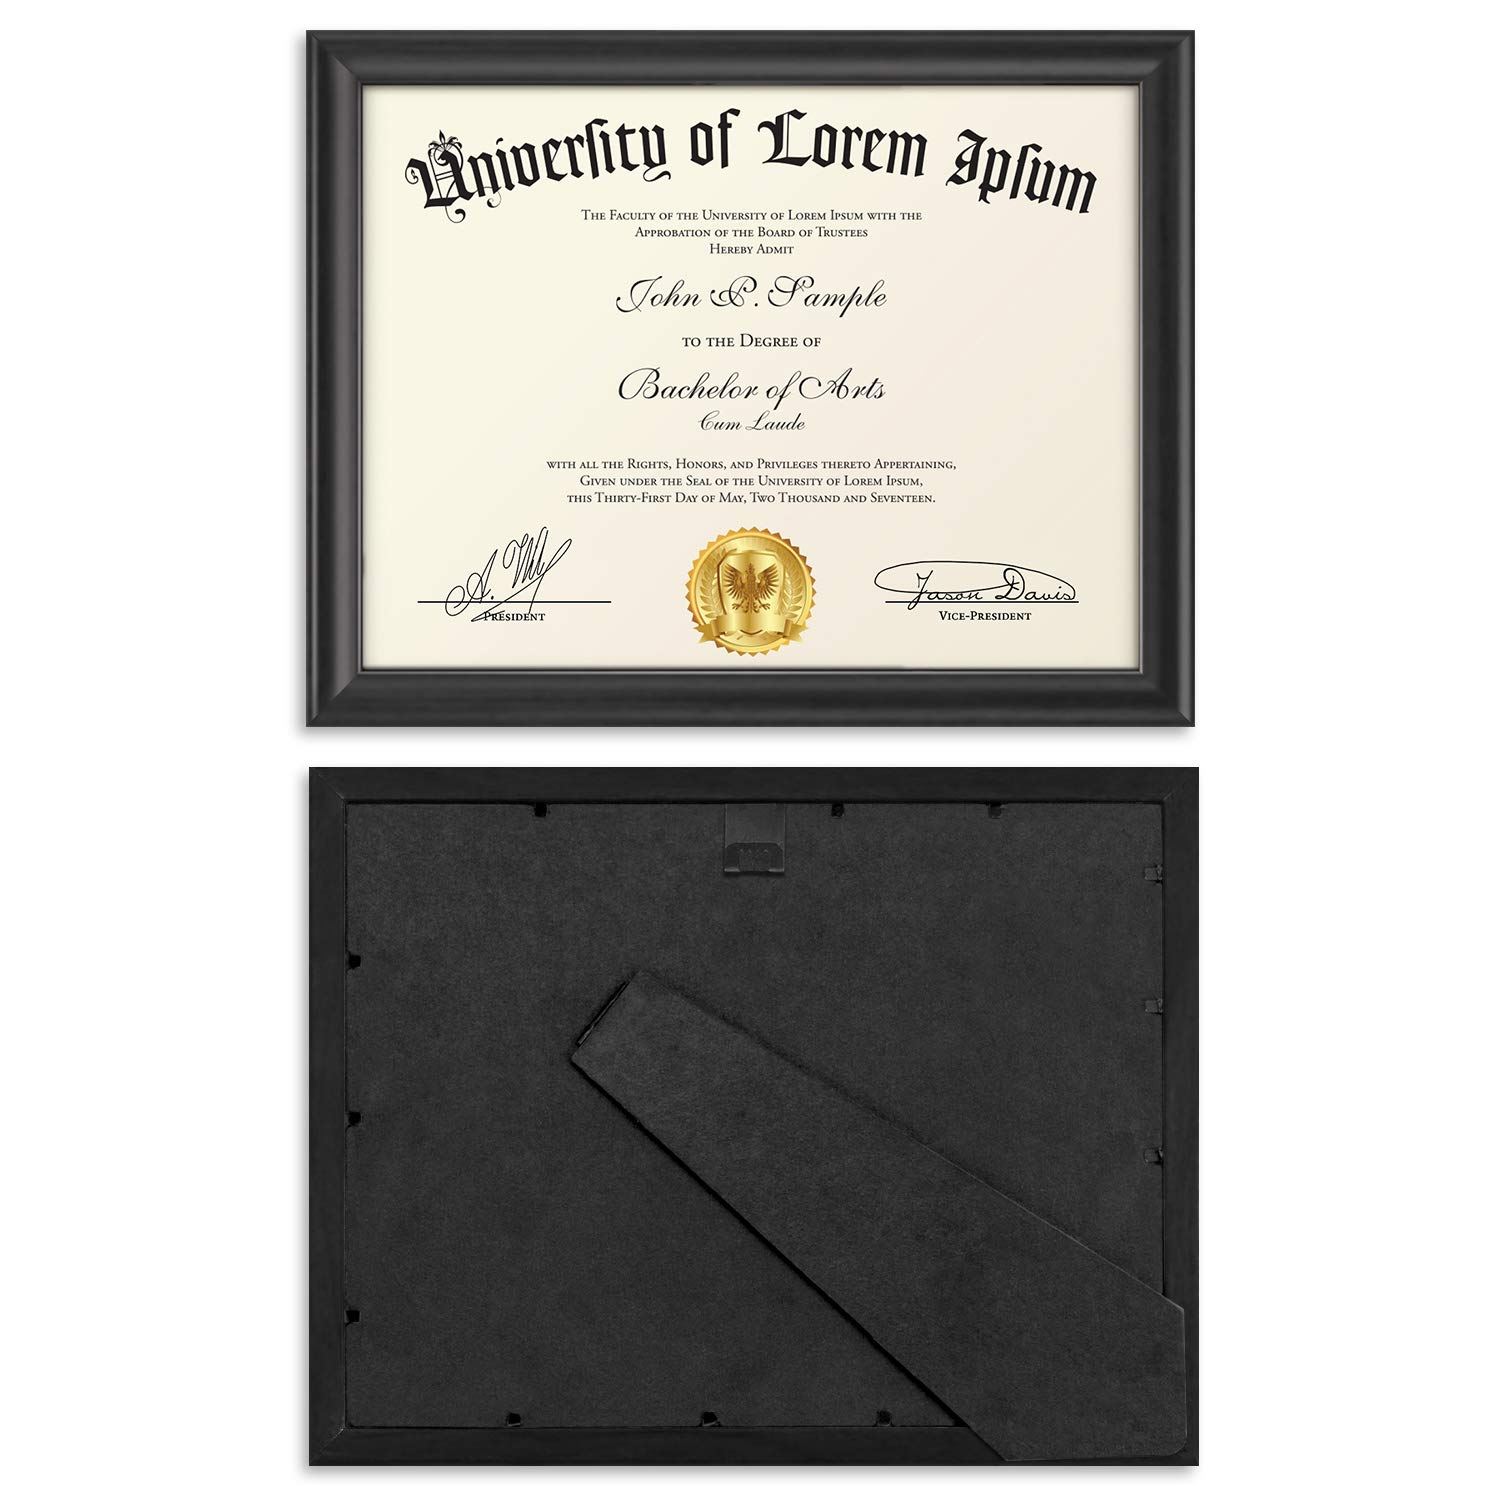 Icona Bay 8.5x11 Document Frame (12 Pack, Black), Black Certificate Frame 8.5 x 11, Composite Wood Diploma Frame for Walls or Tables, Set of 12 Lakeland Collection by Icona Bay (Image #5)